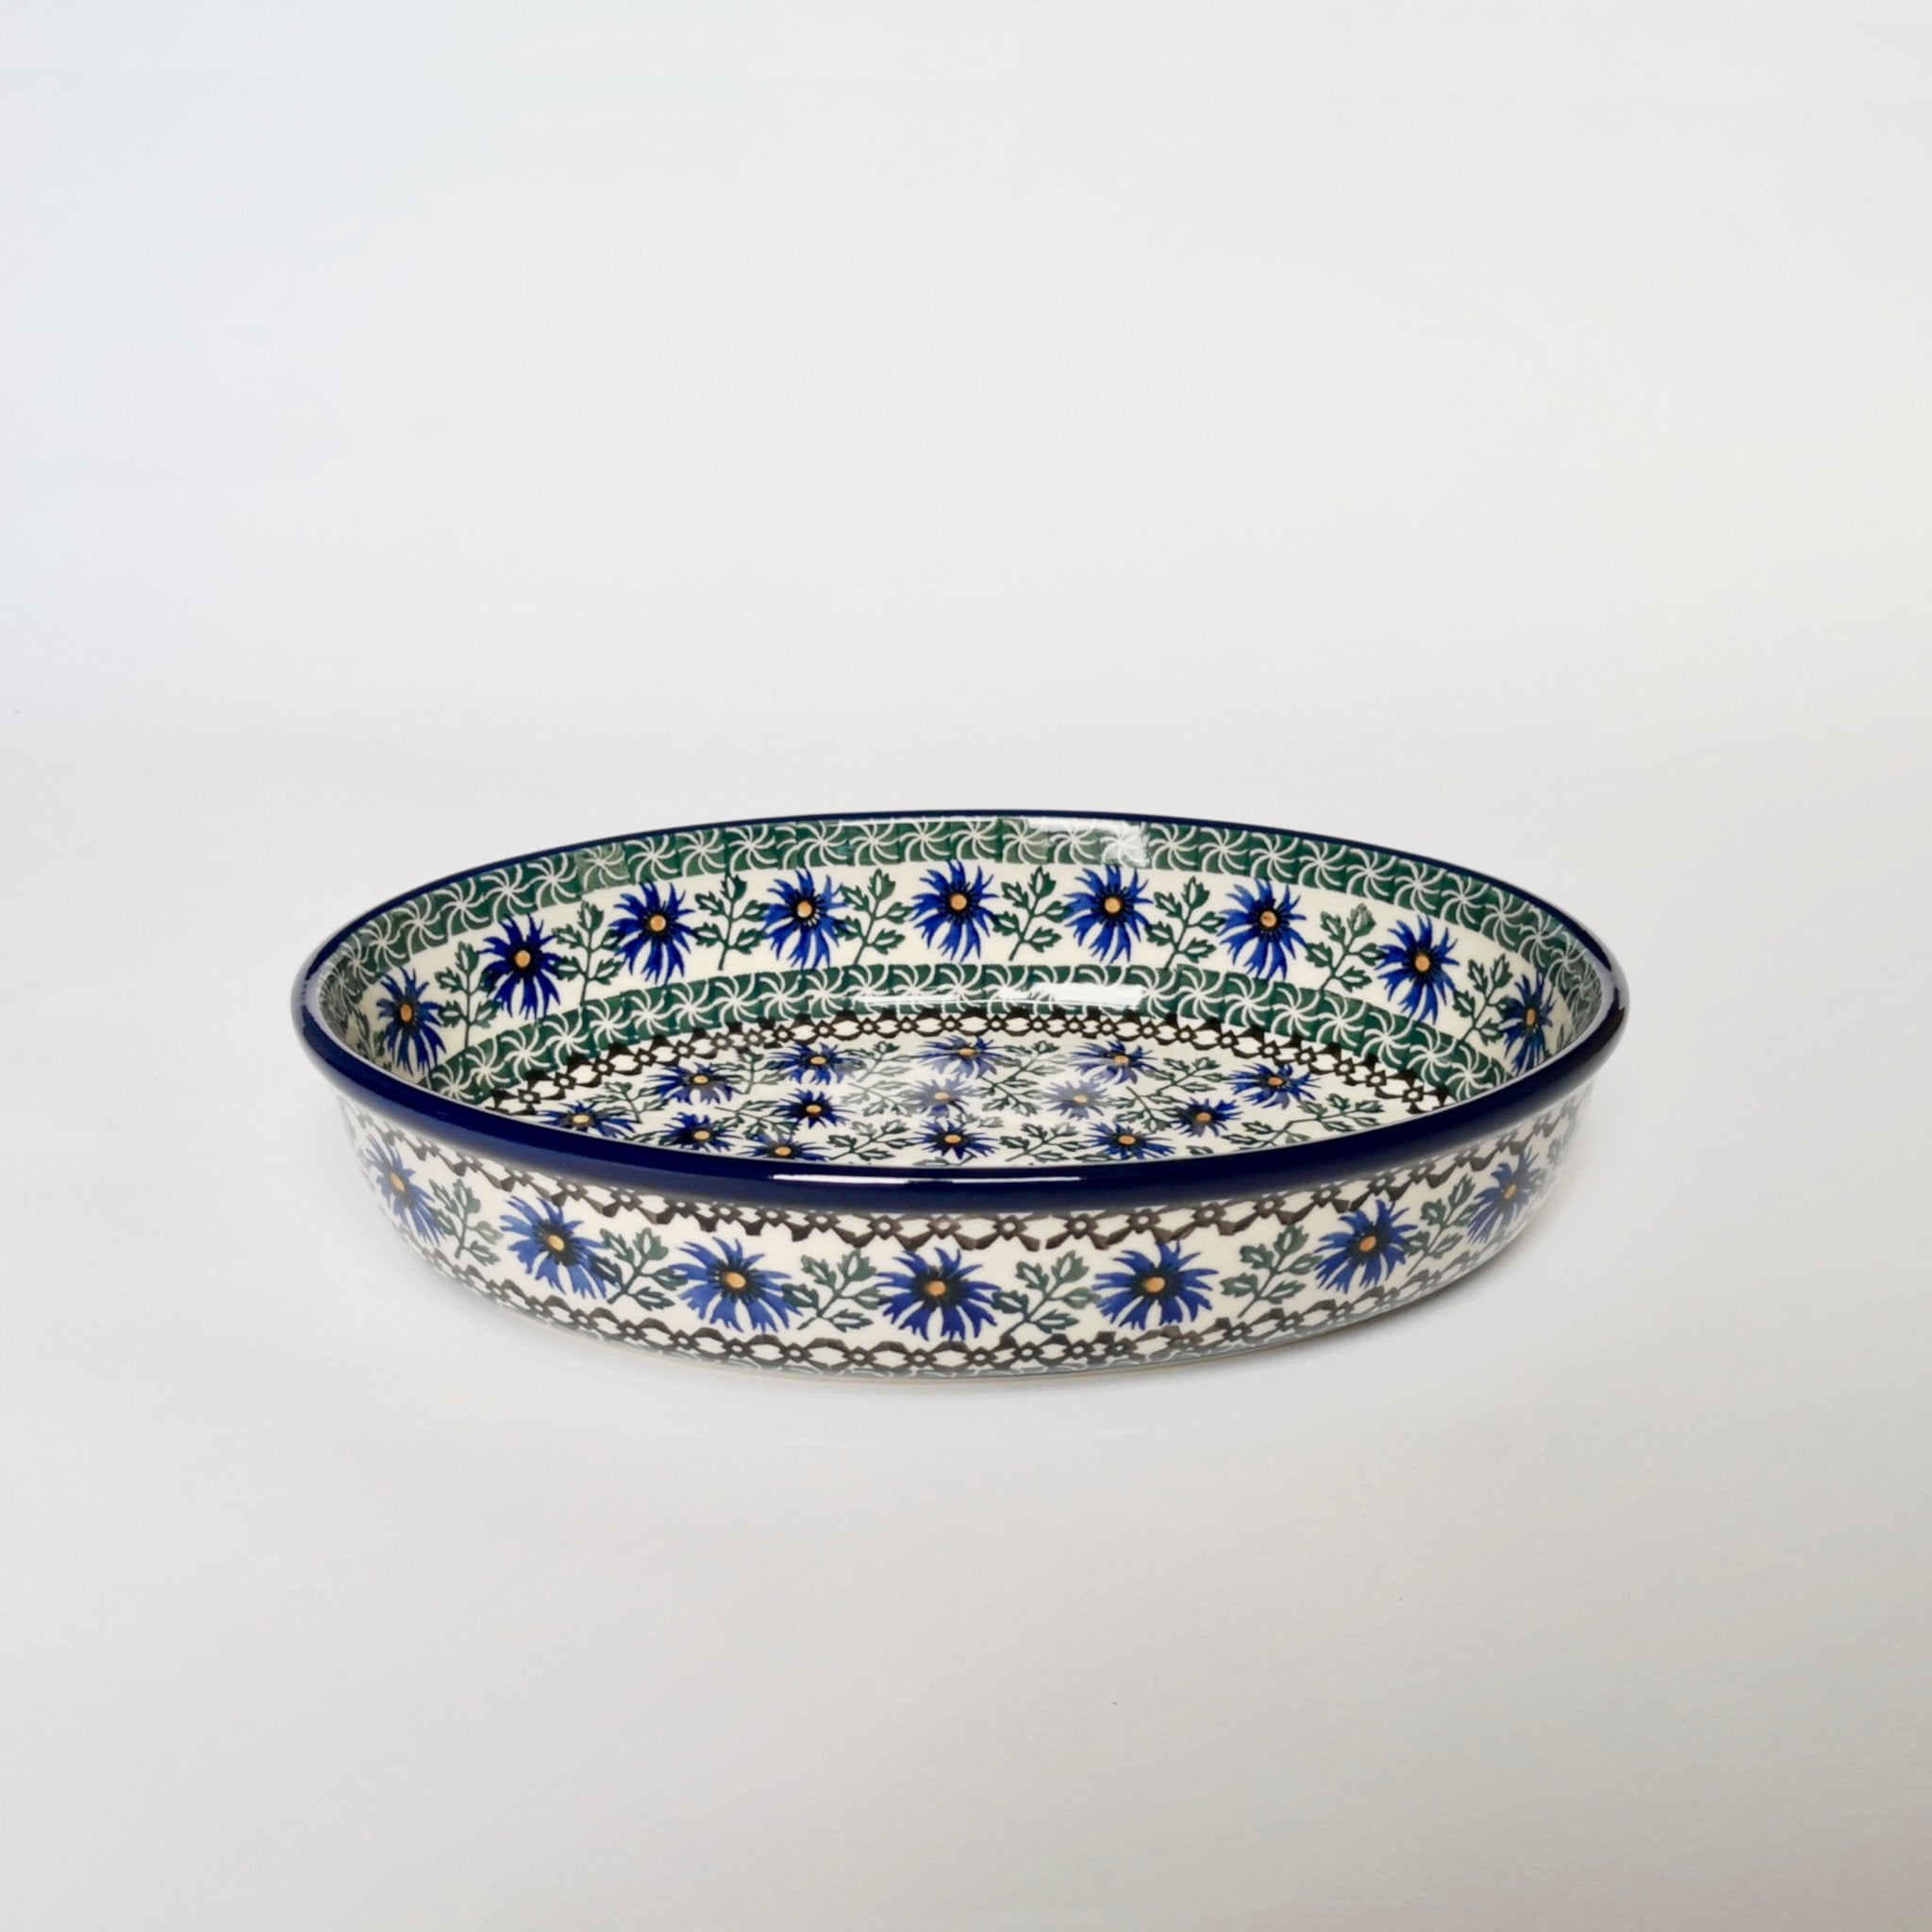 Medium Oval Baking Dish in Cornflower